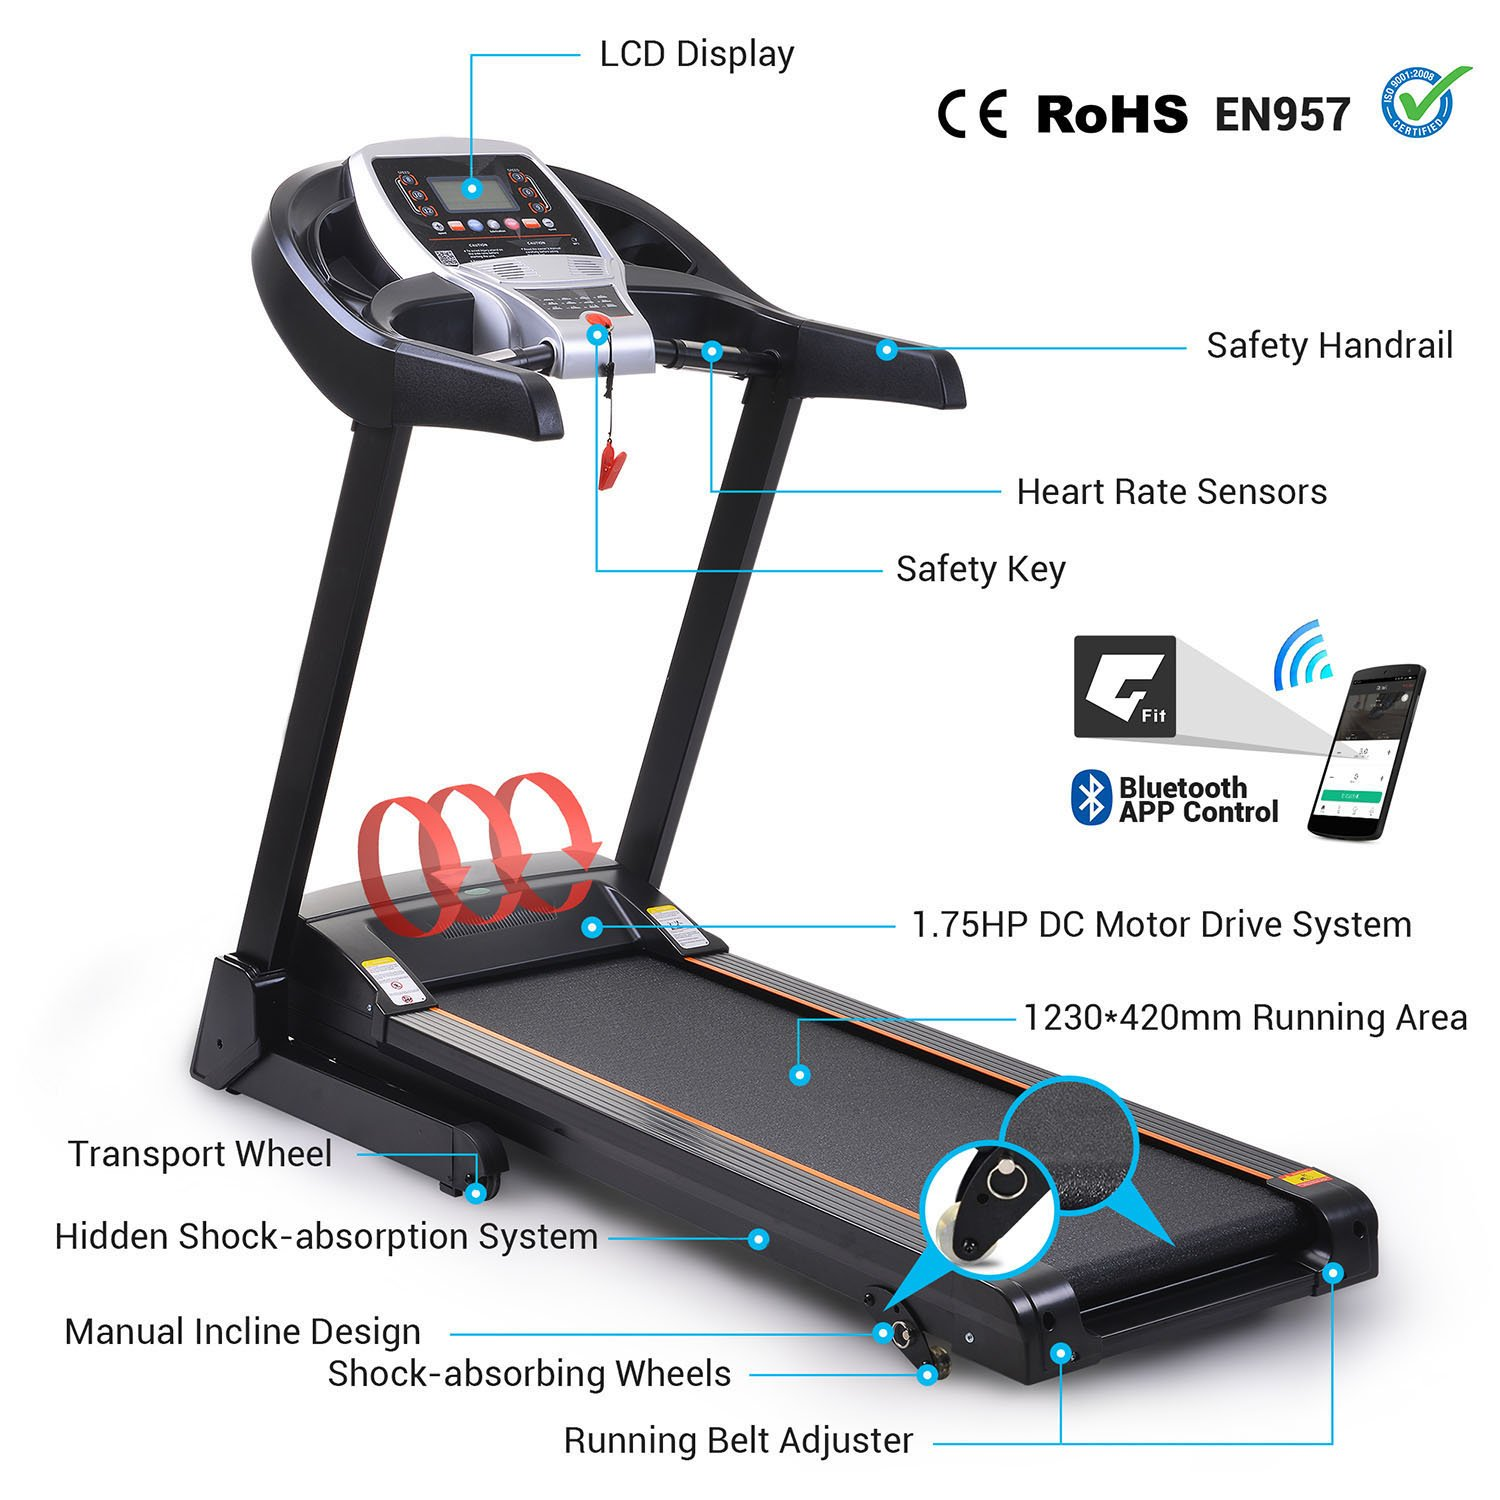 Miageek Fitness Folding Electric Jogging Treadmill with Smartphone APP Control, Walking Running Exercise Machine Incline Trainer Equipment Easy Assembly (2.25 HP - Black) by Miageek (Image #3)